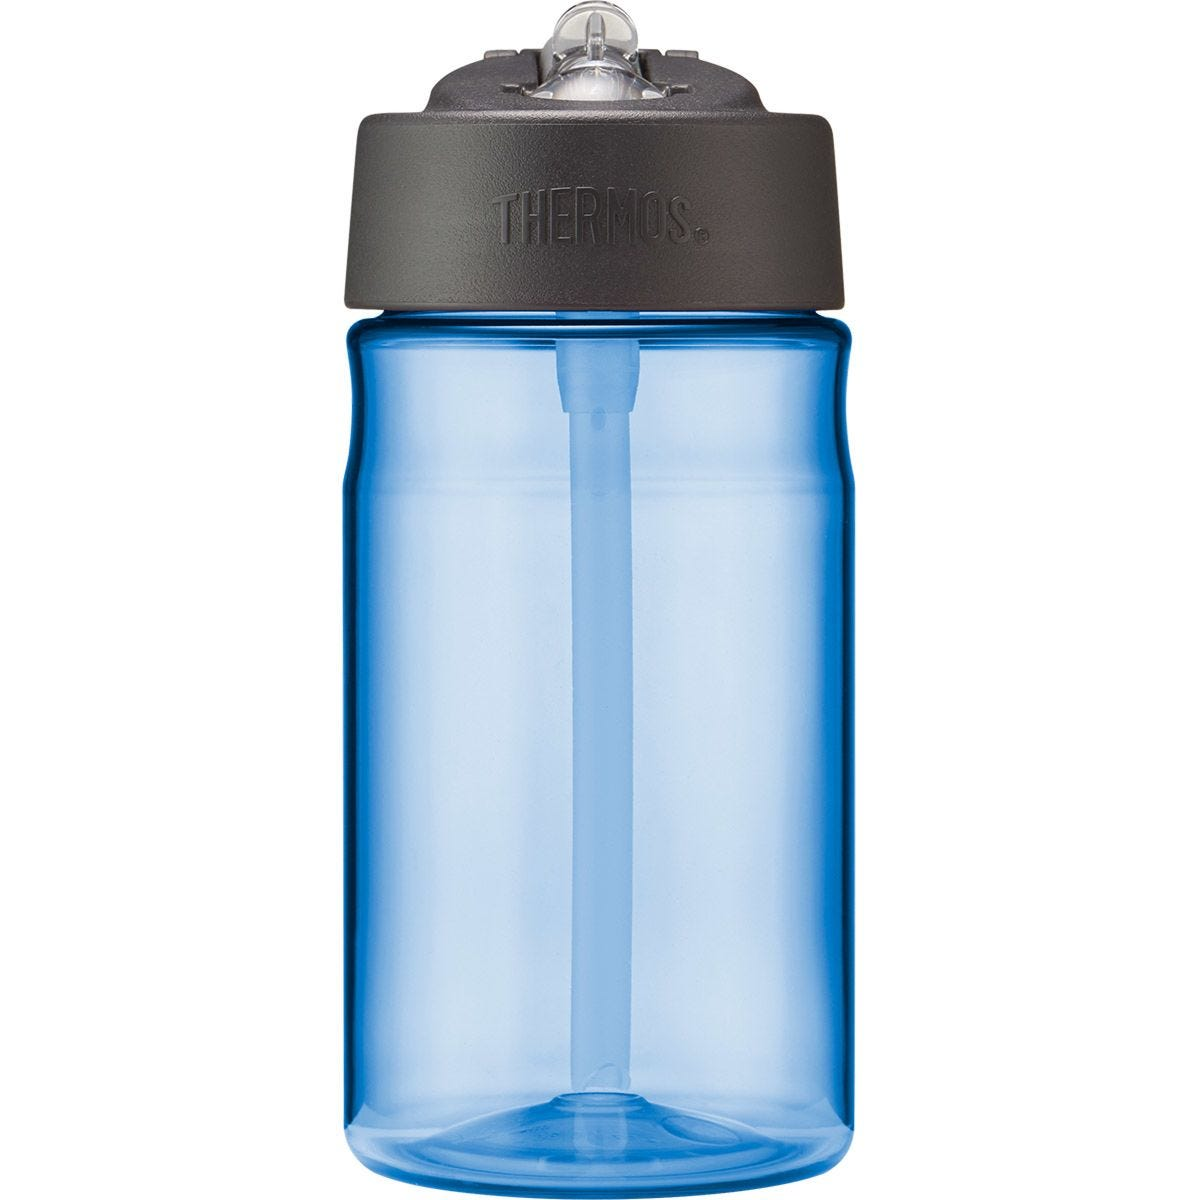 Thermos Hydration Bottle with Straw 355ml - Blue